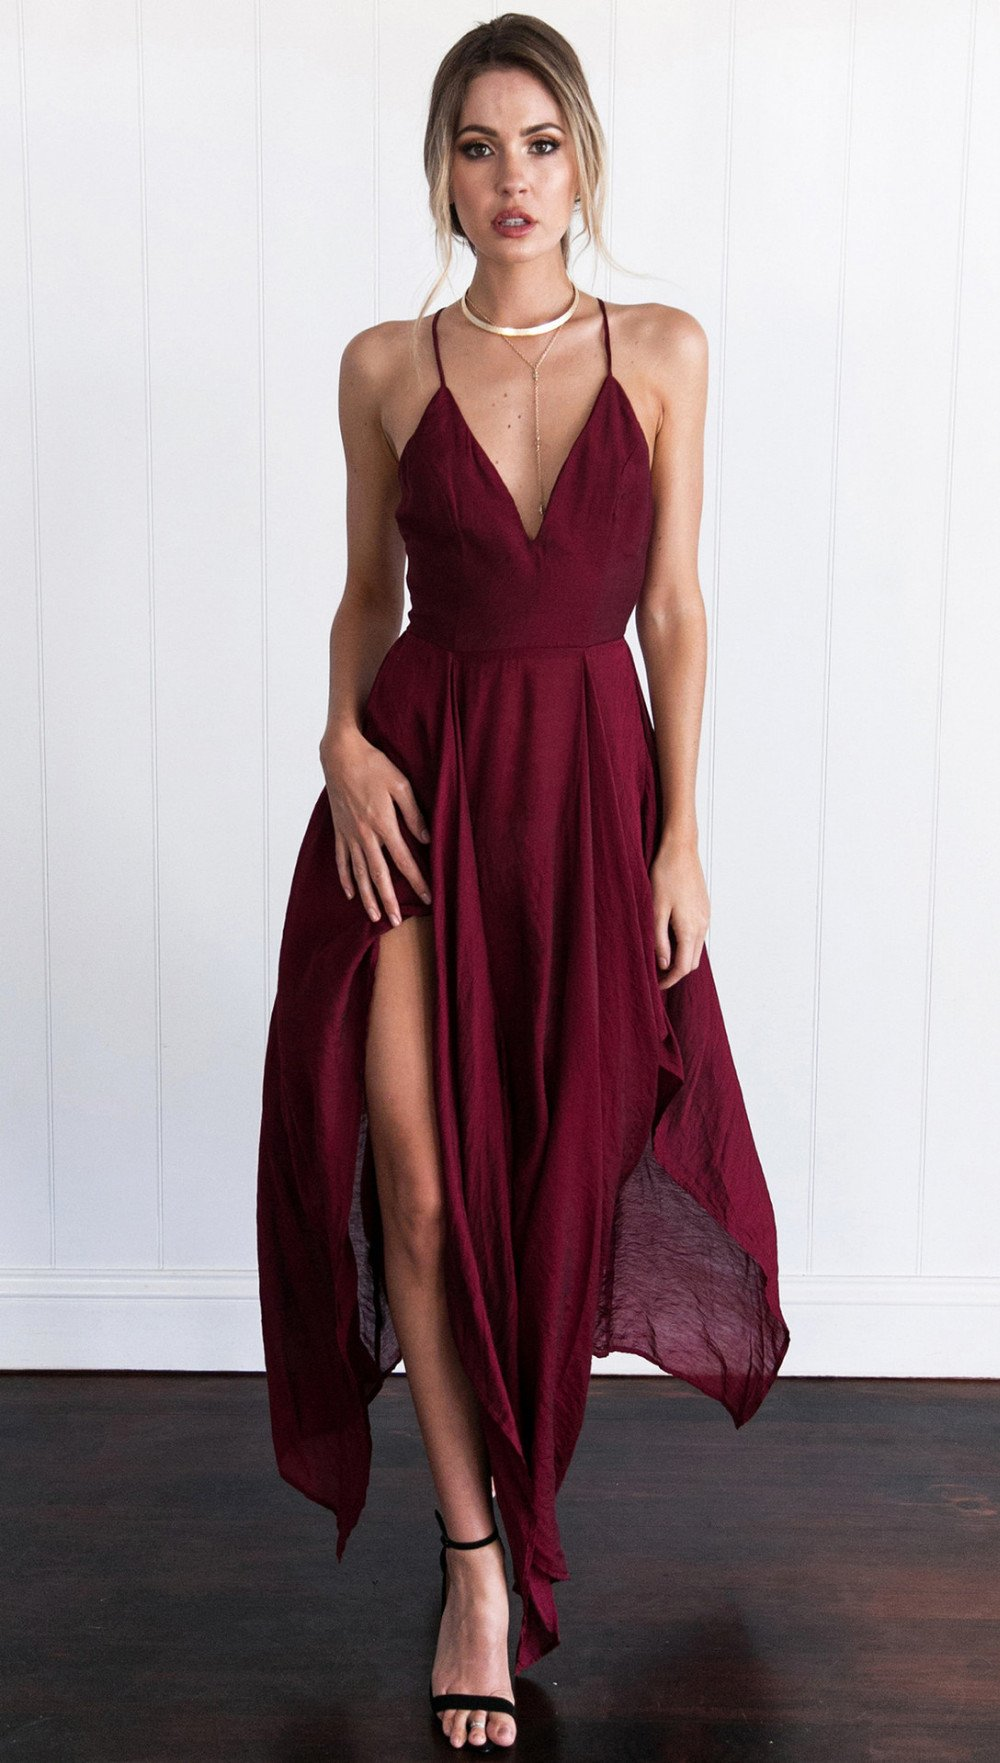 Sexy dress pictures